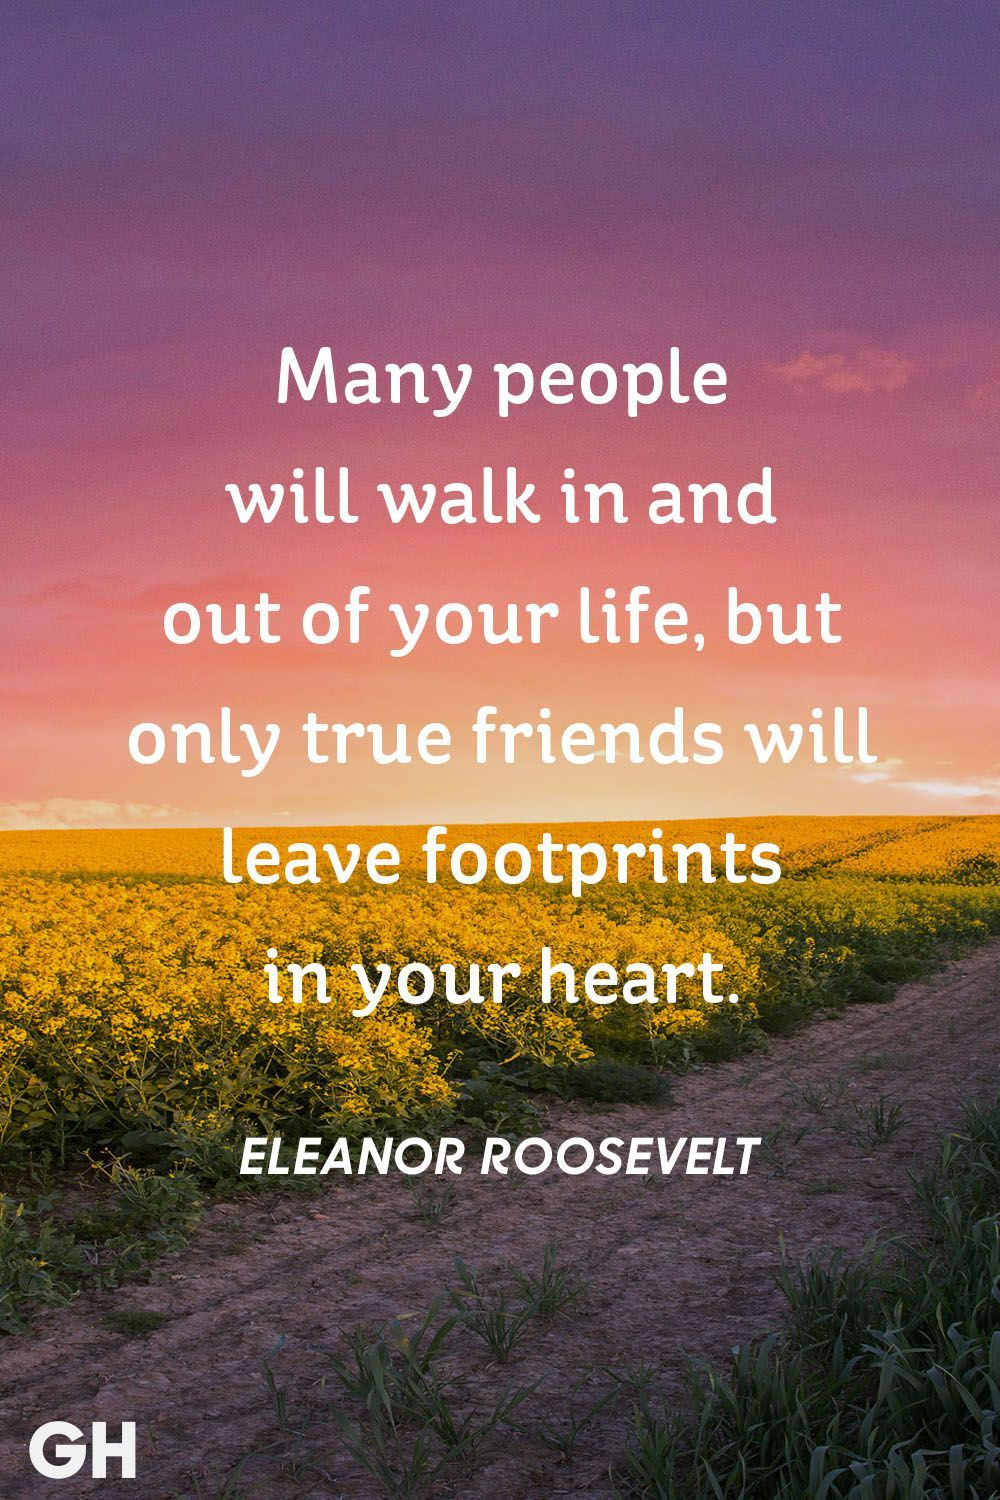 Quotes About Friendship  40 Friendship Quotes to With Your Besties